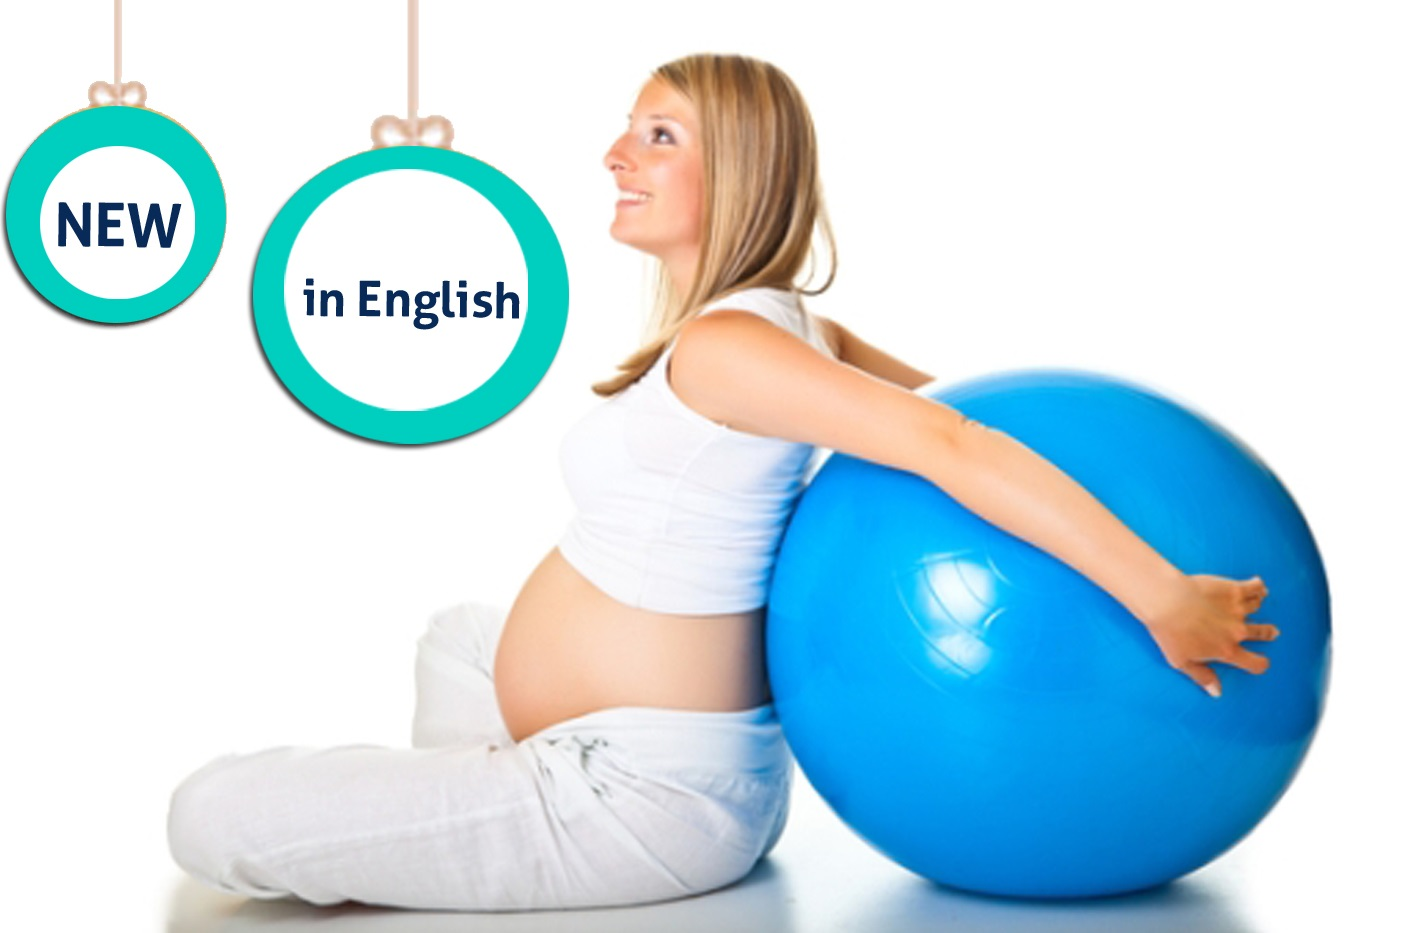 Birth with No Regret Childbirth Education & Breathing Techniques